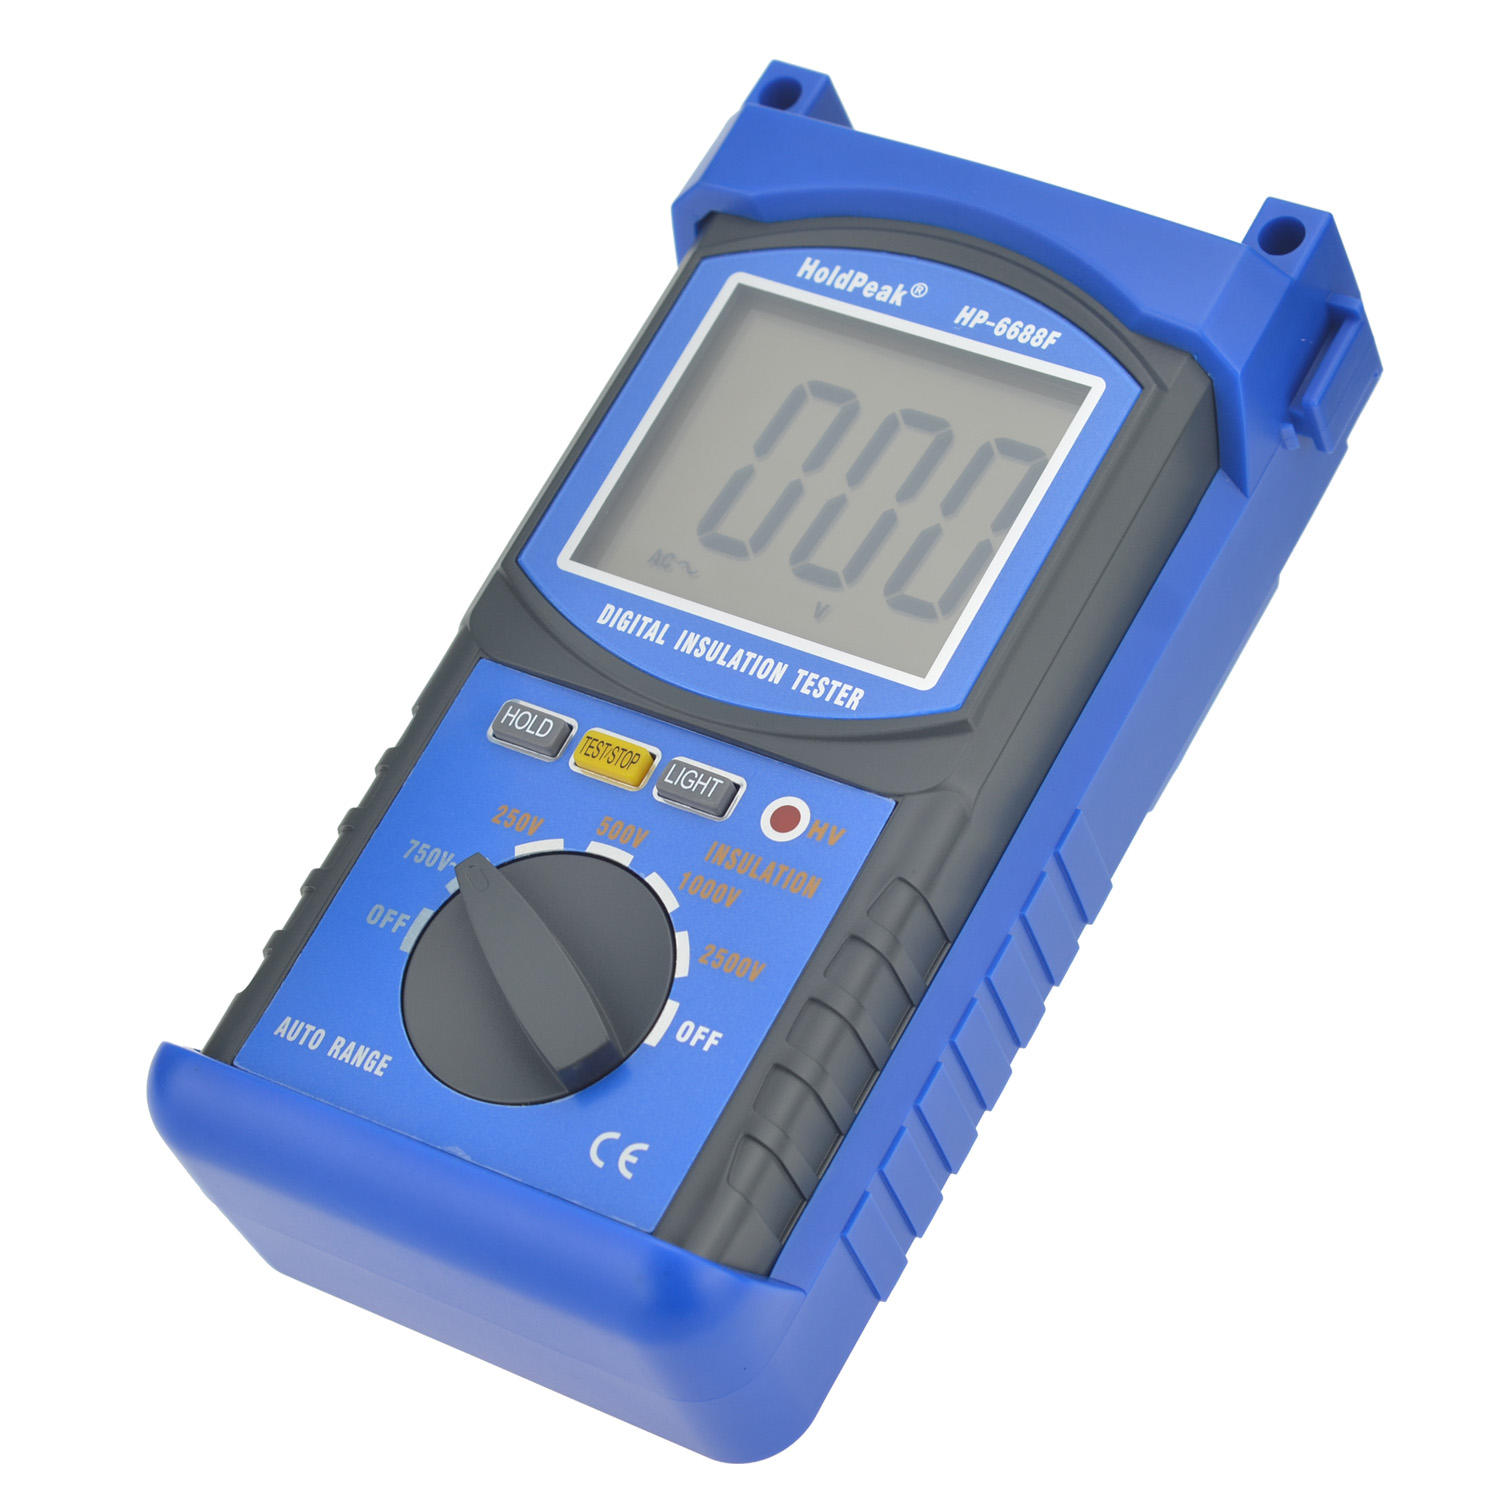 HoldPeak unique insulation resistance meter Supply for verification-2